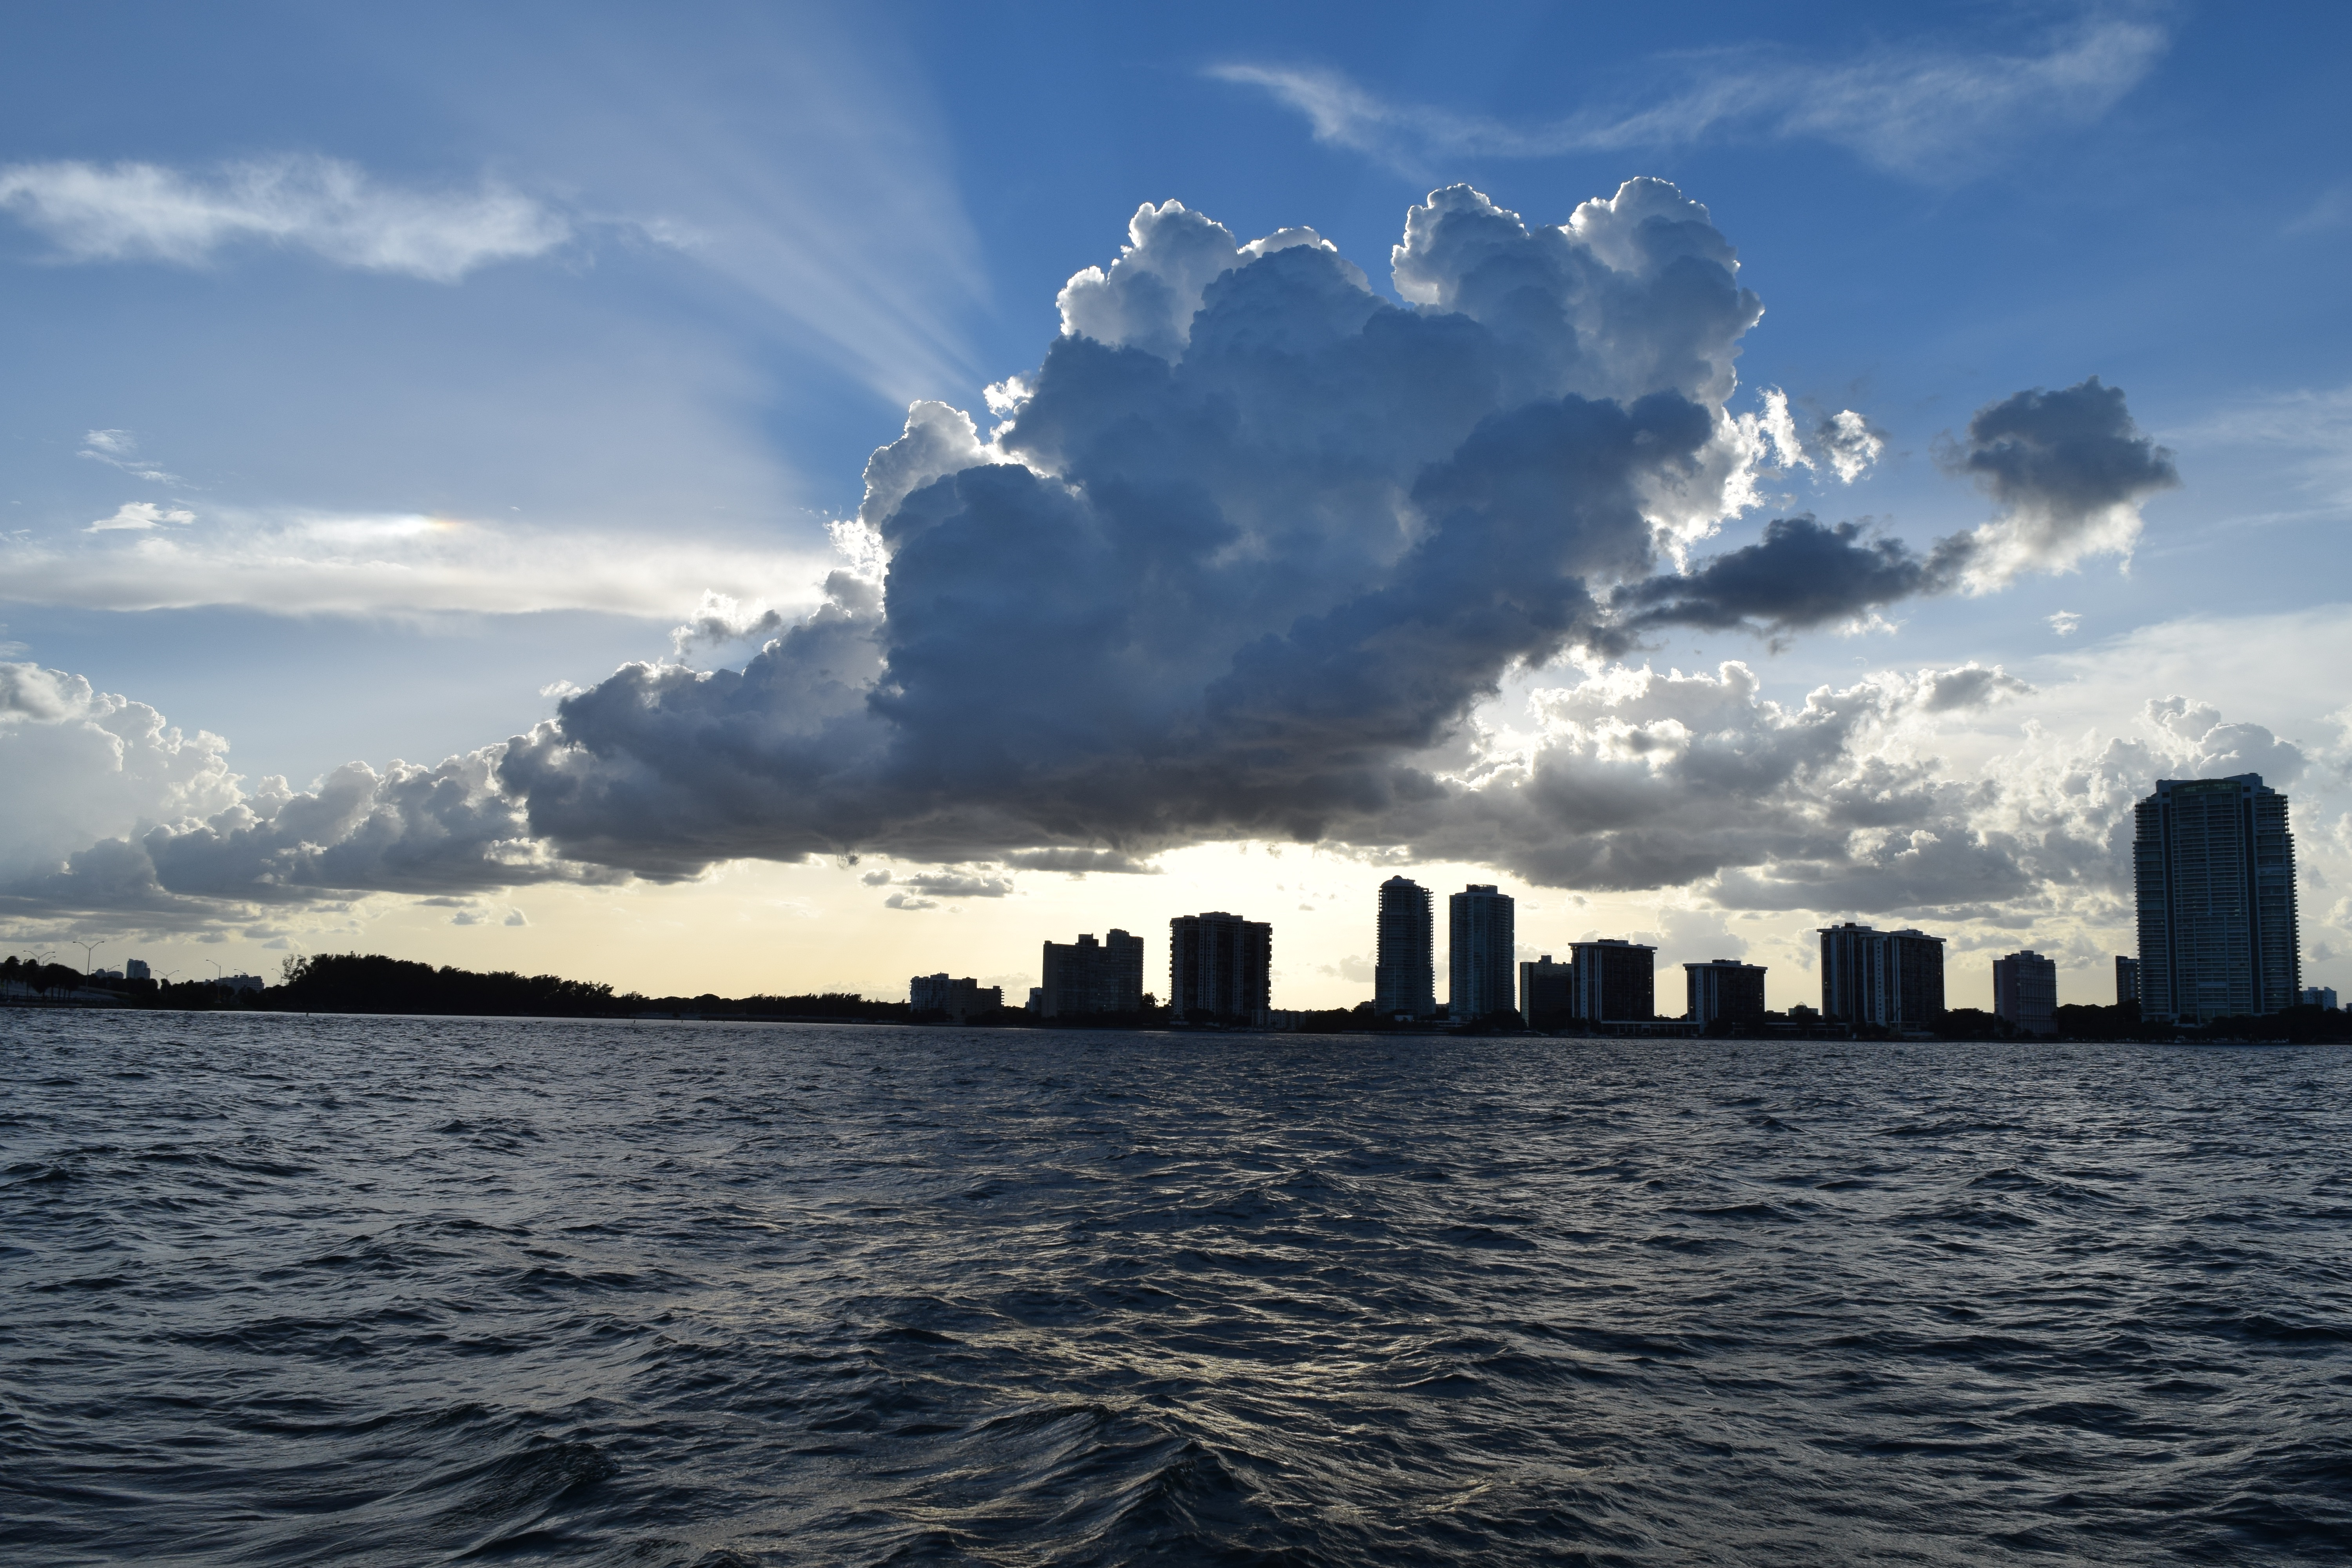 View from the boat of downtown Miami in Biscayne Bay